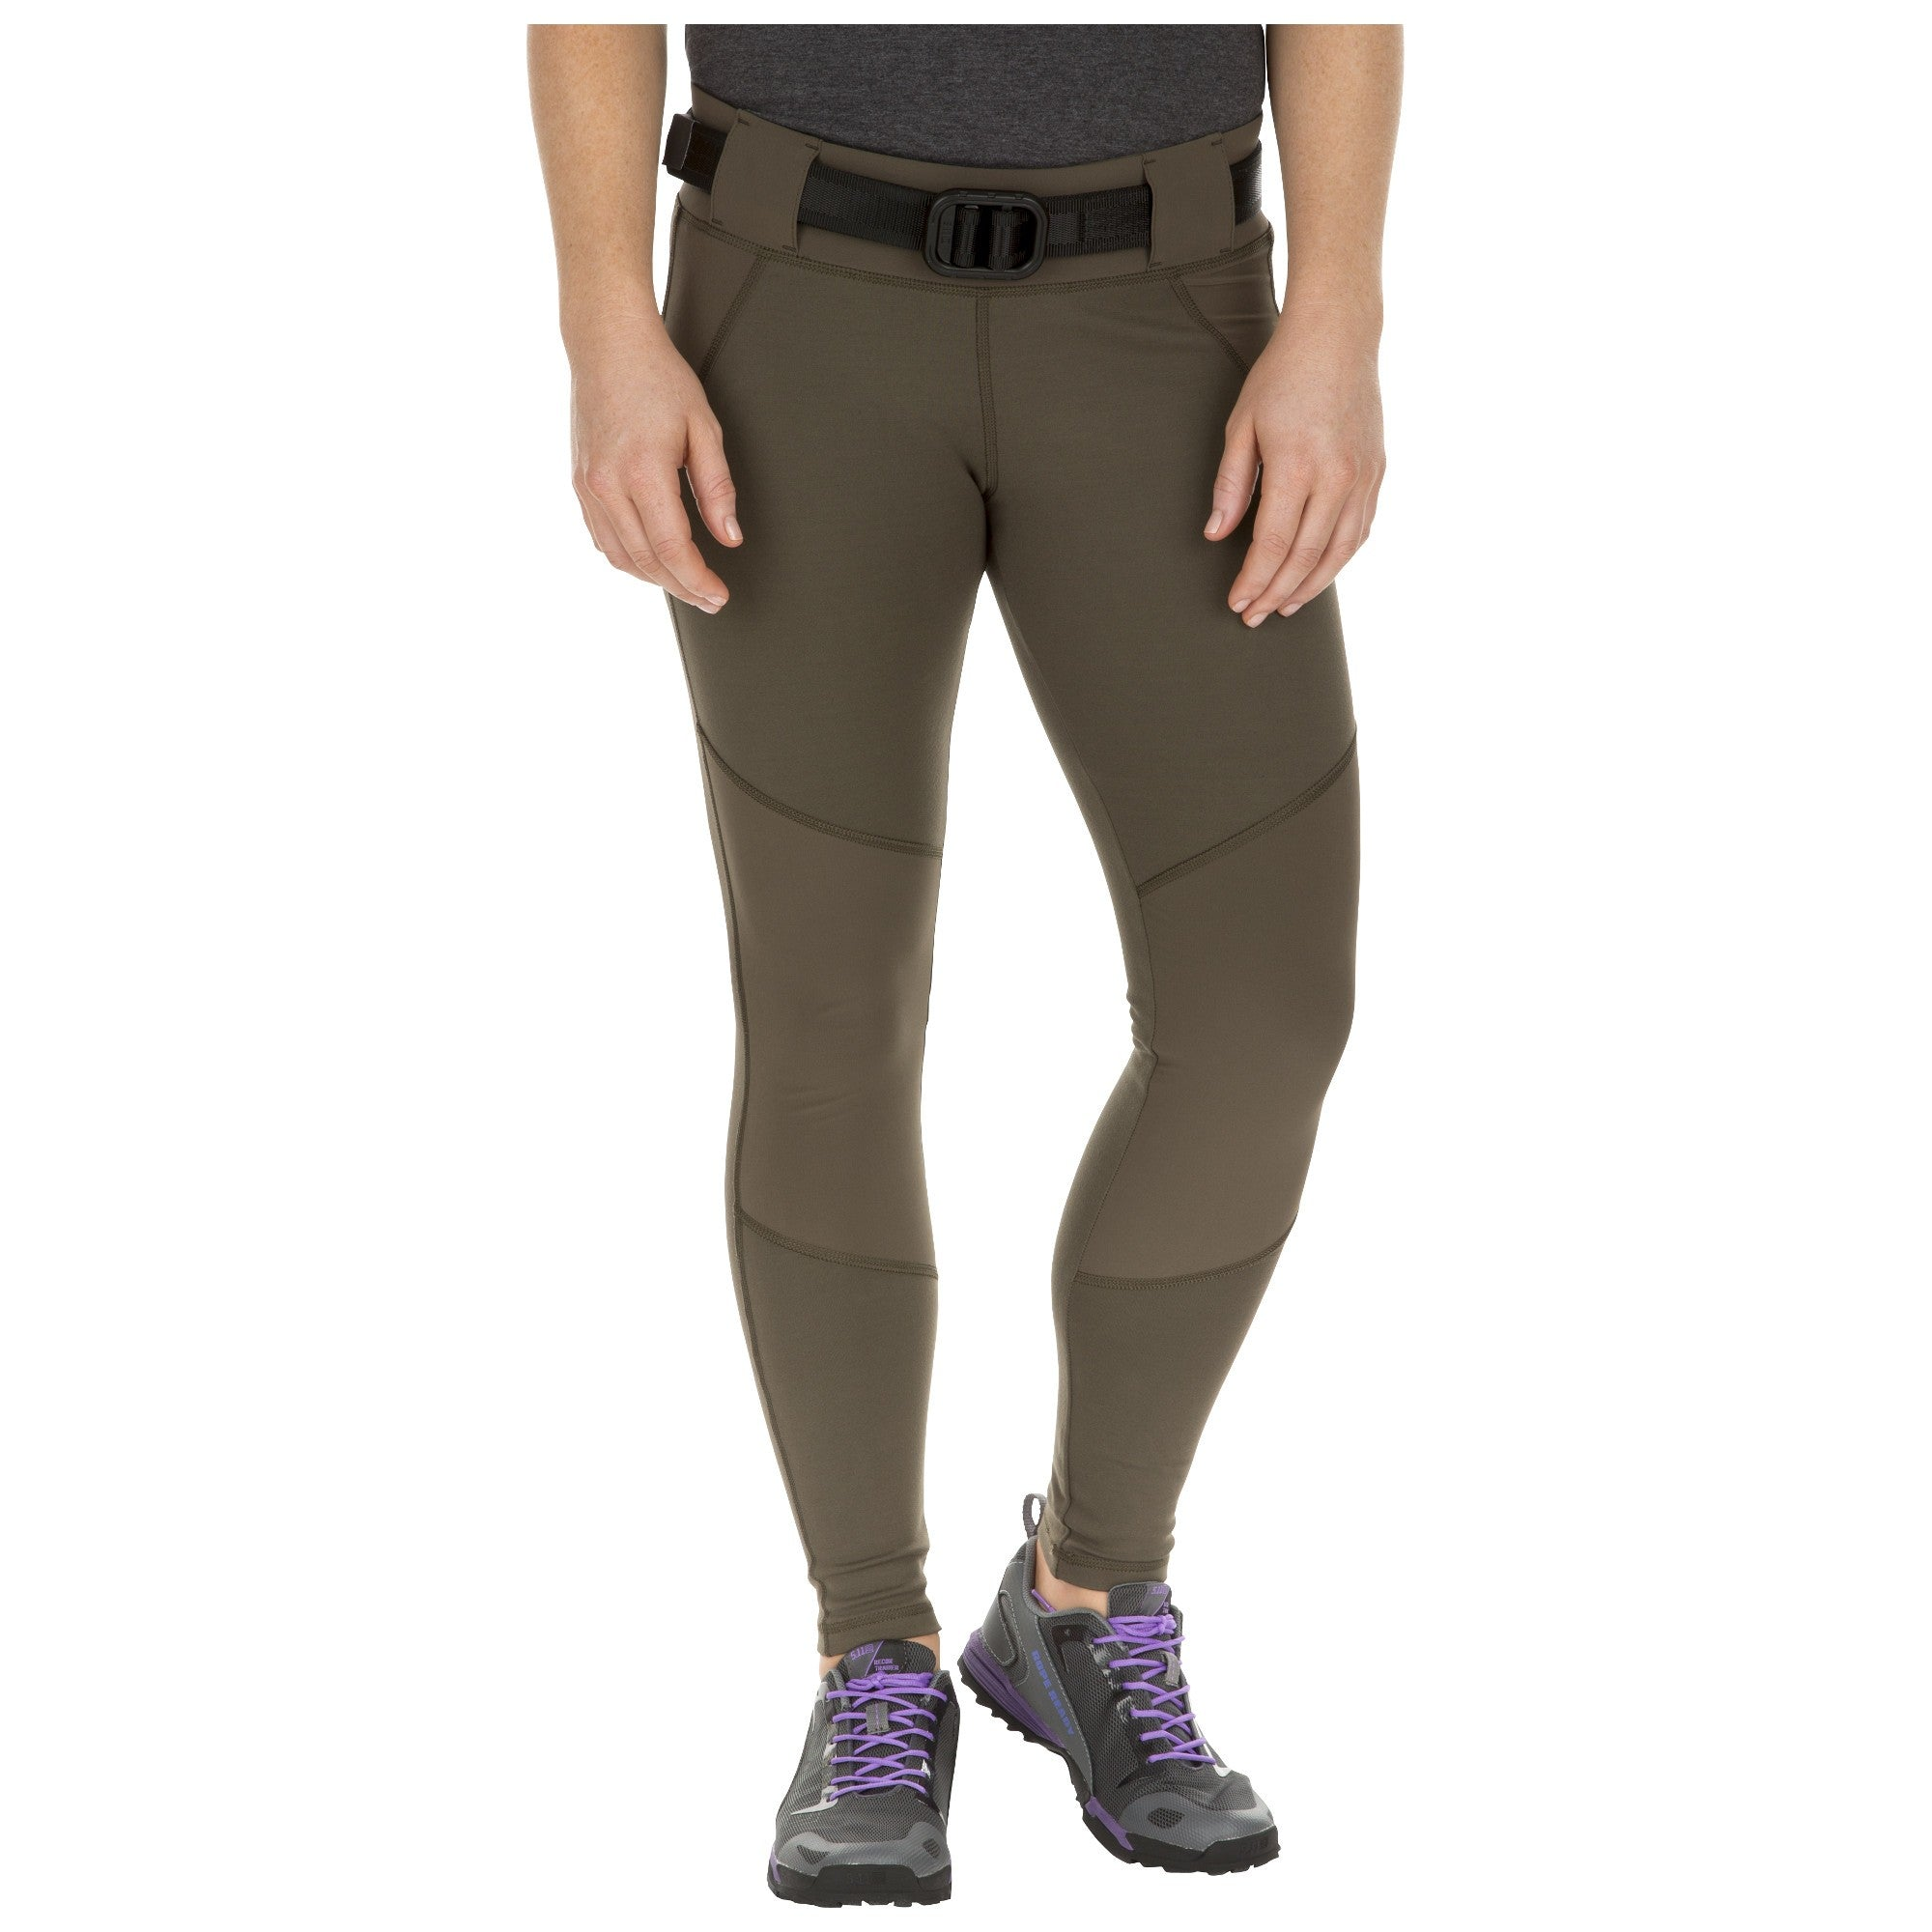 5.11 Tactical Women's Raven Range Tight Tundra